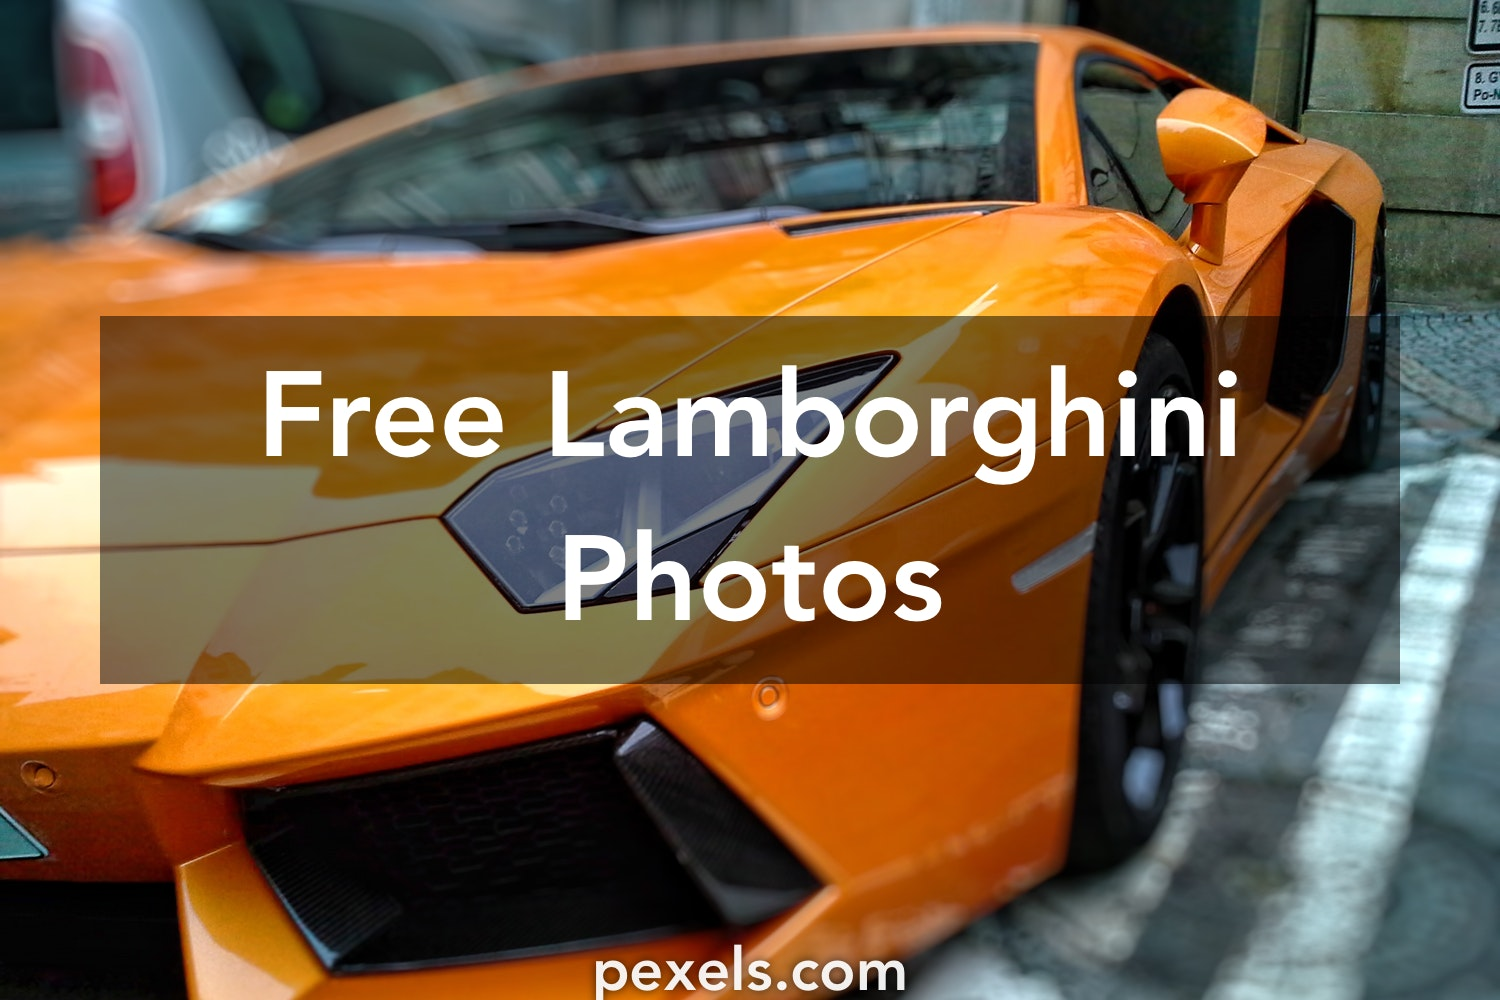 huracan carscoops free in get a and lamborghini buy house dubai new photo gallery